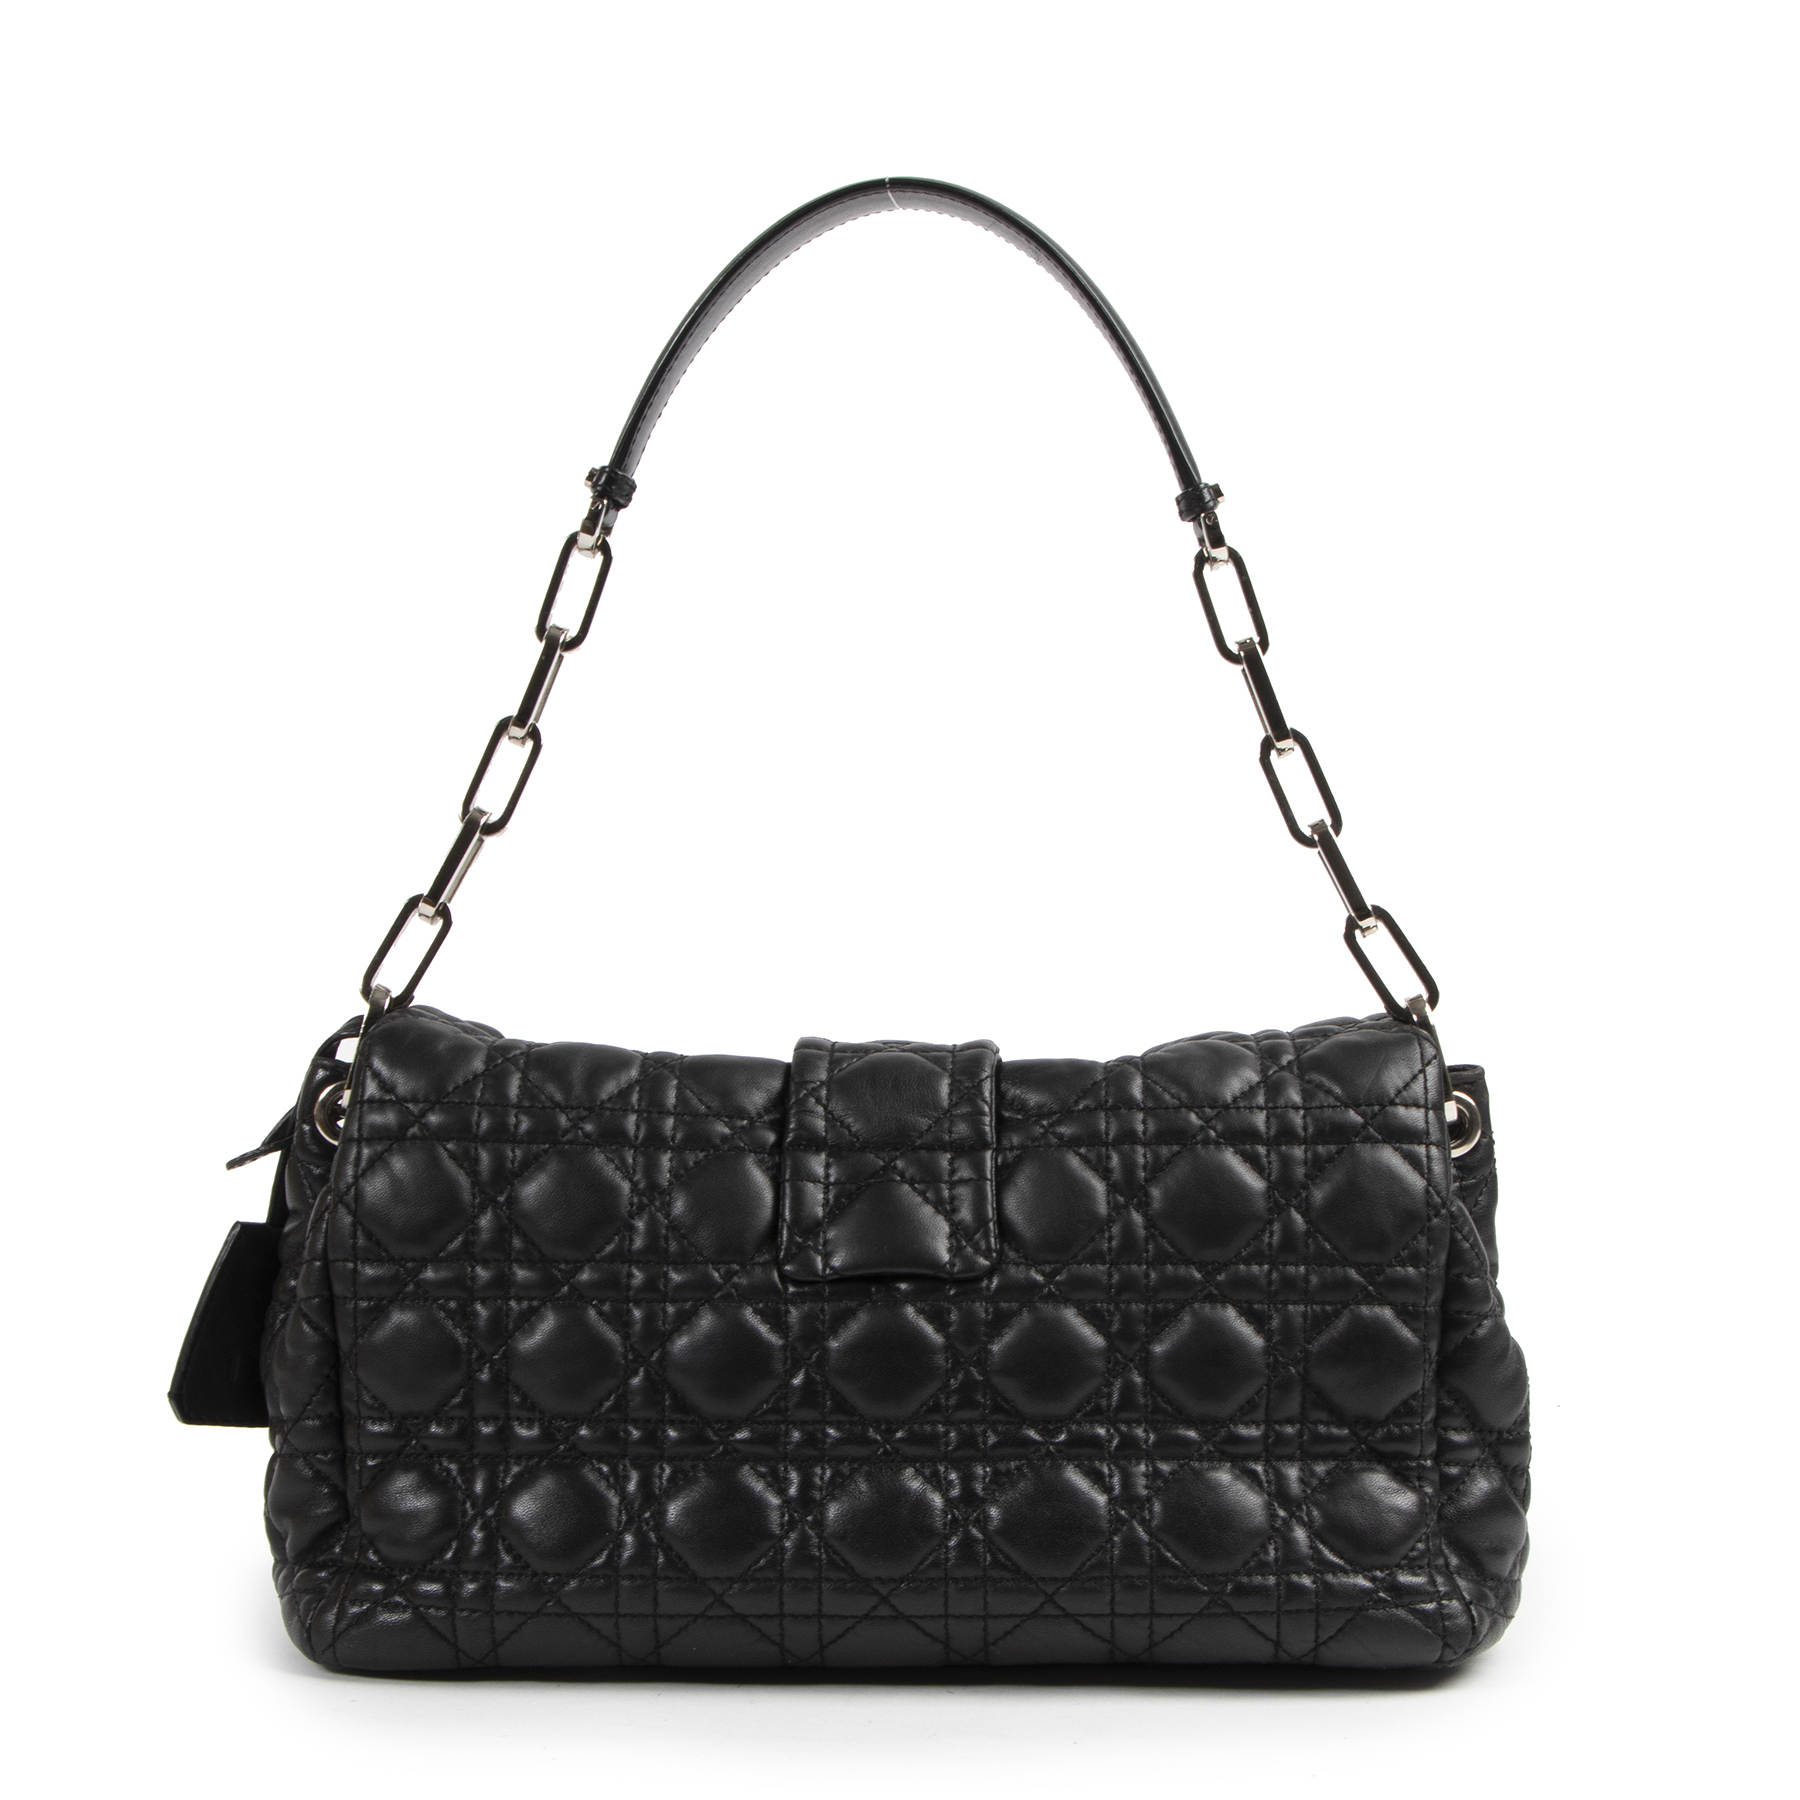 Dior Black Cannage Quilted Lambskin Leather Miss Dior Flap Shoulder Bag